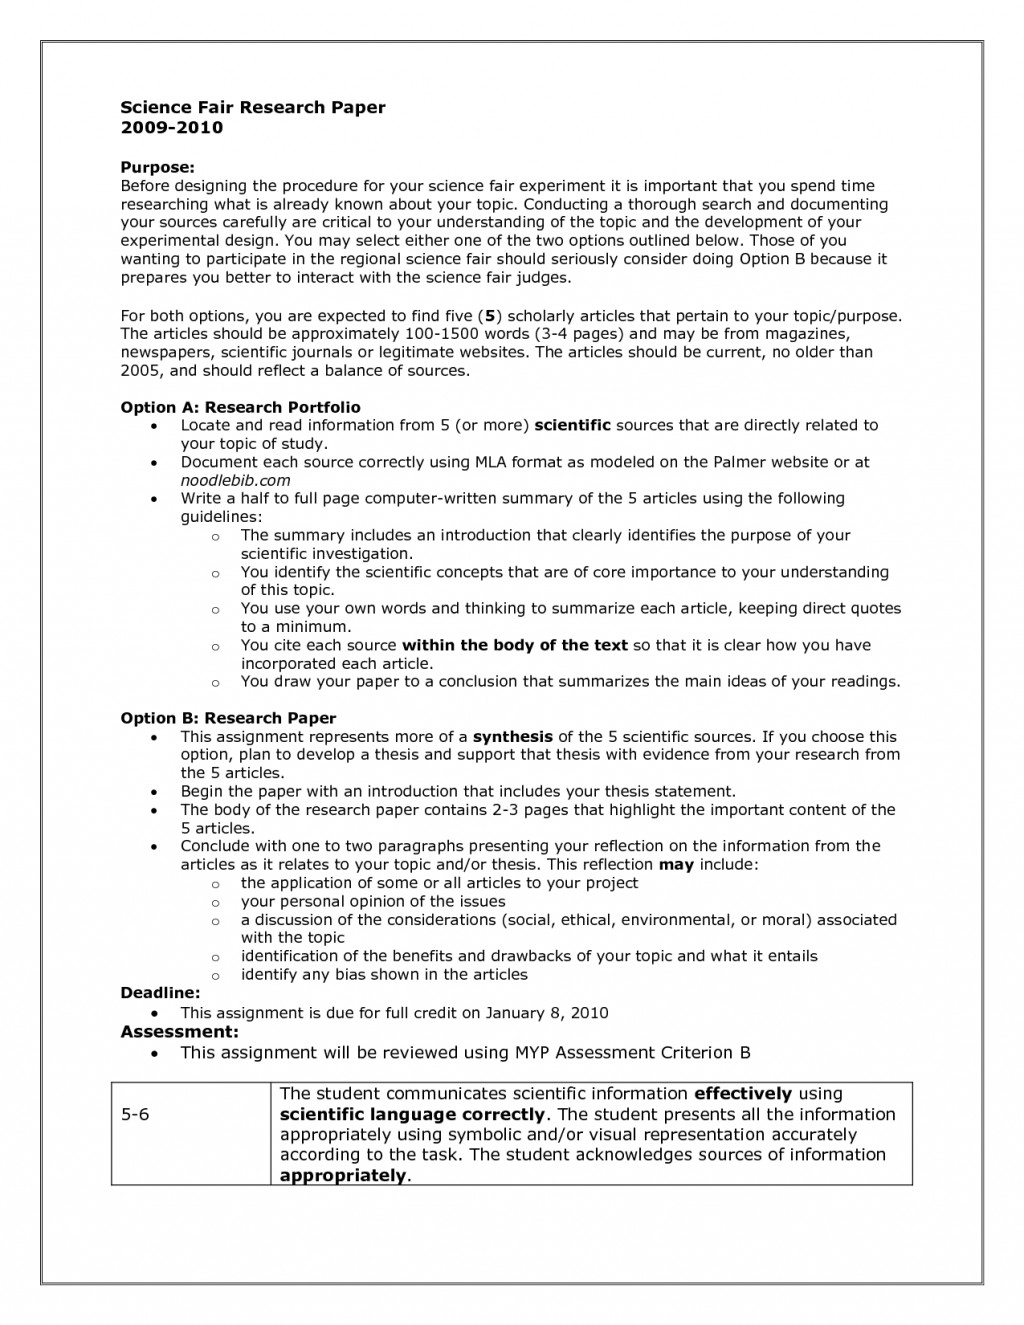 002 Research Paper Format For Writing Scientific Best Photos Of Science Procedure Template Fair Essay Example L Unique A Large